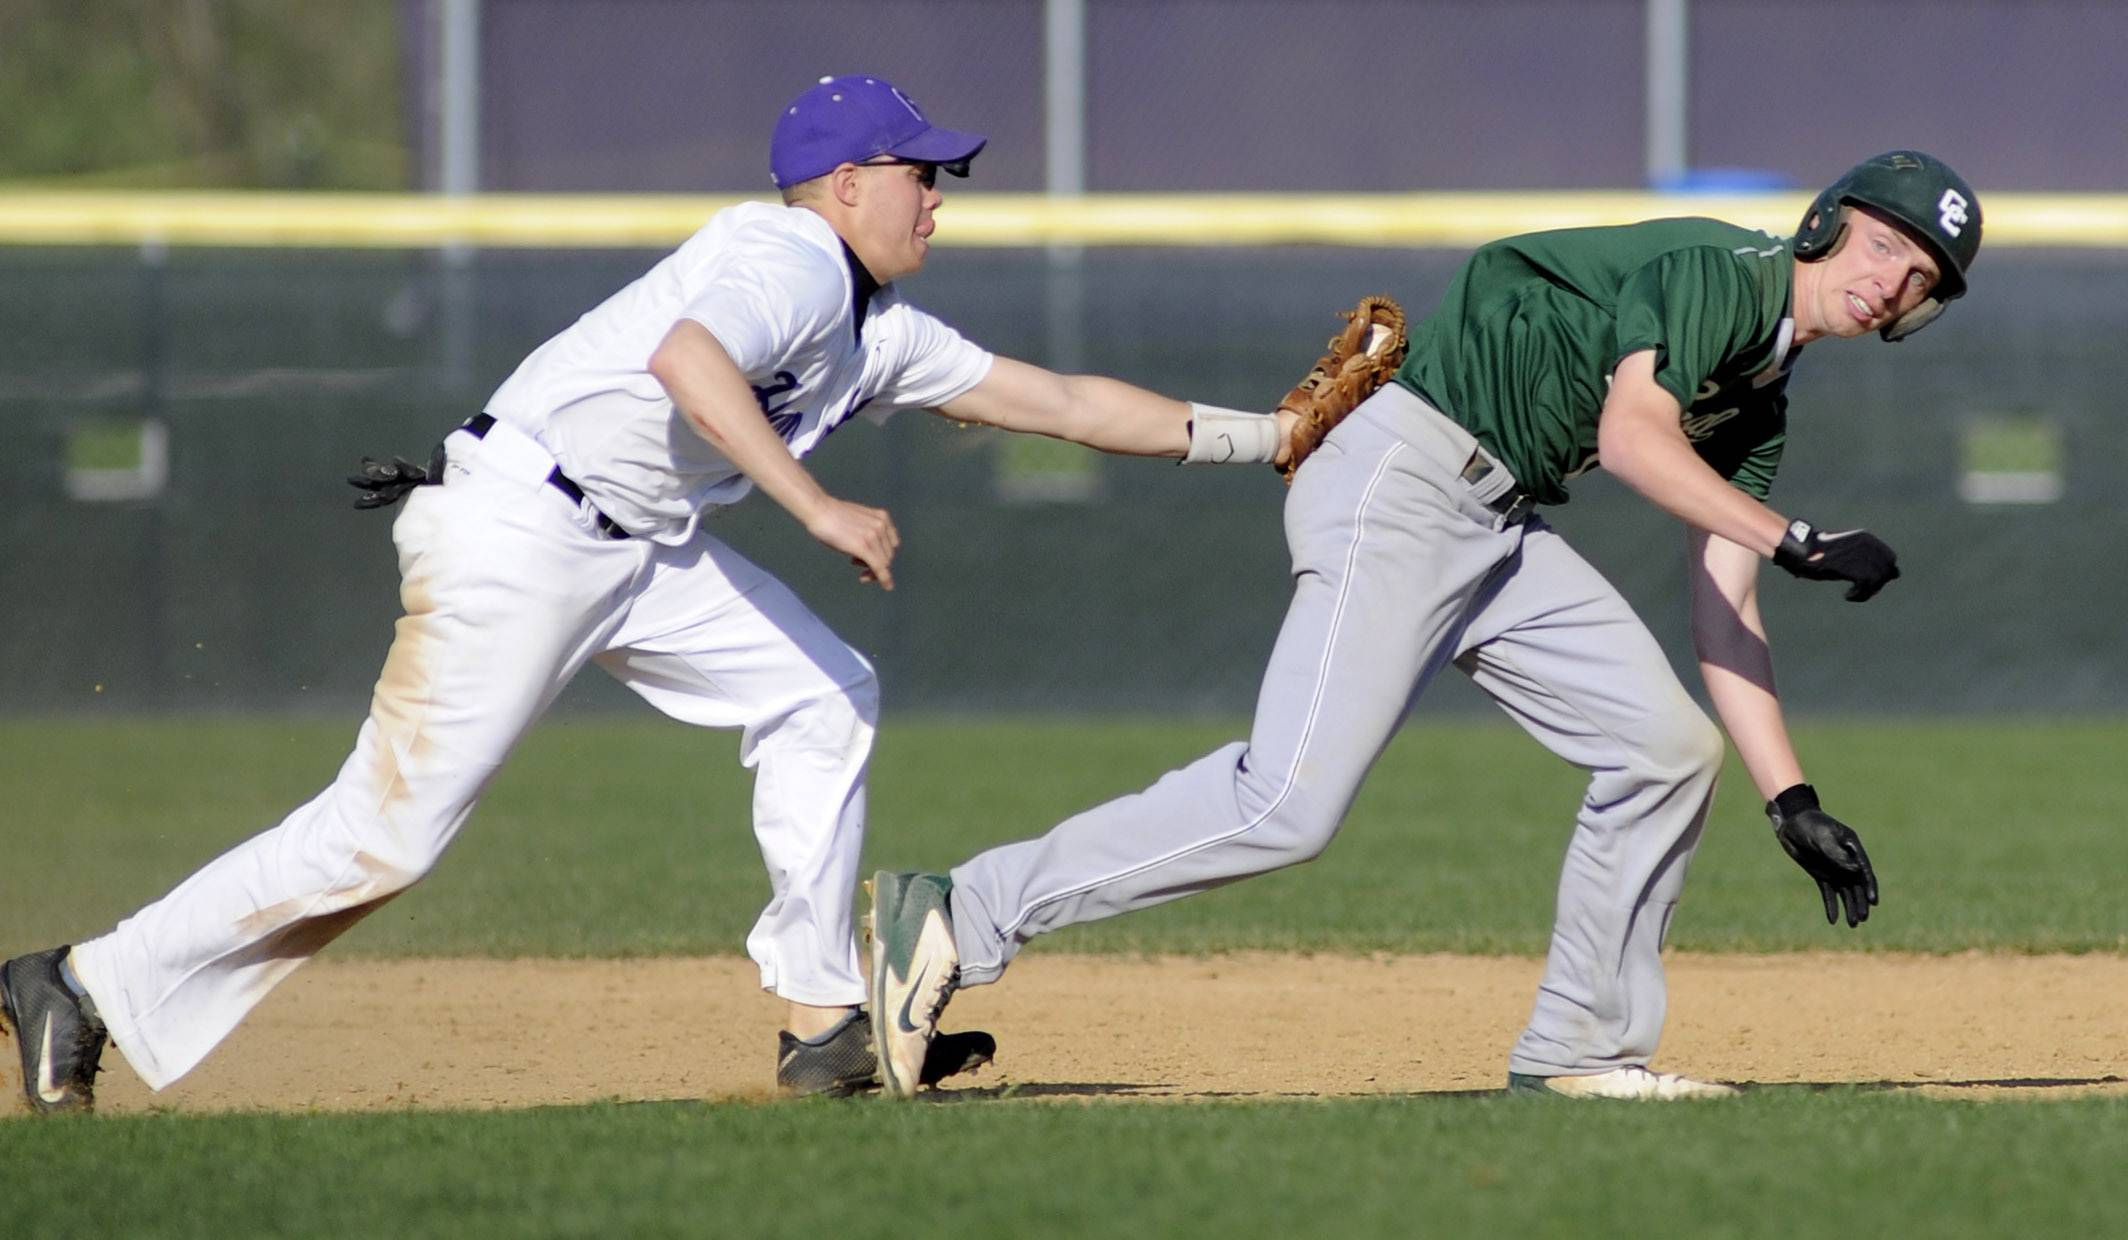 Hampshire's Dillon Kuhn tags out Grayslake Central's Mike Stone as he tries to sprint back to first base in the third inning at Hampshire on Friday.